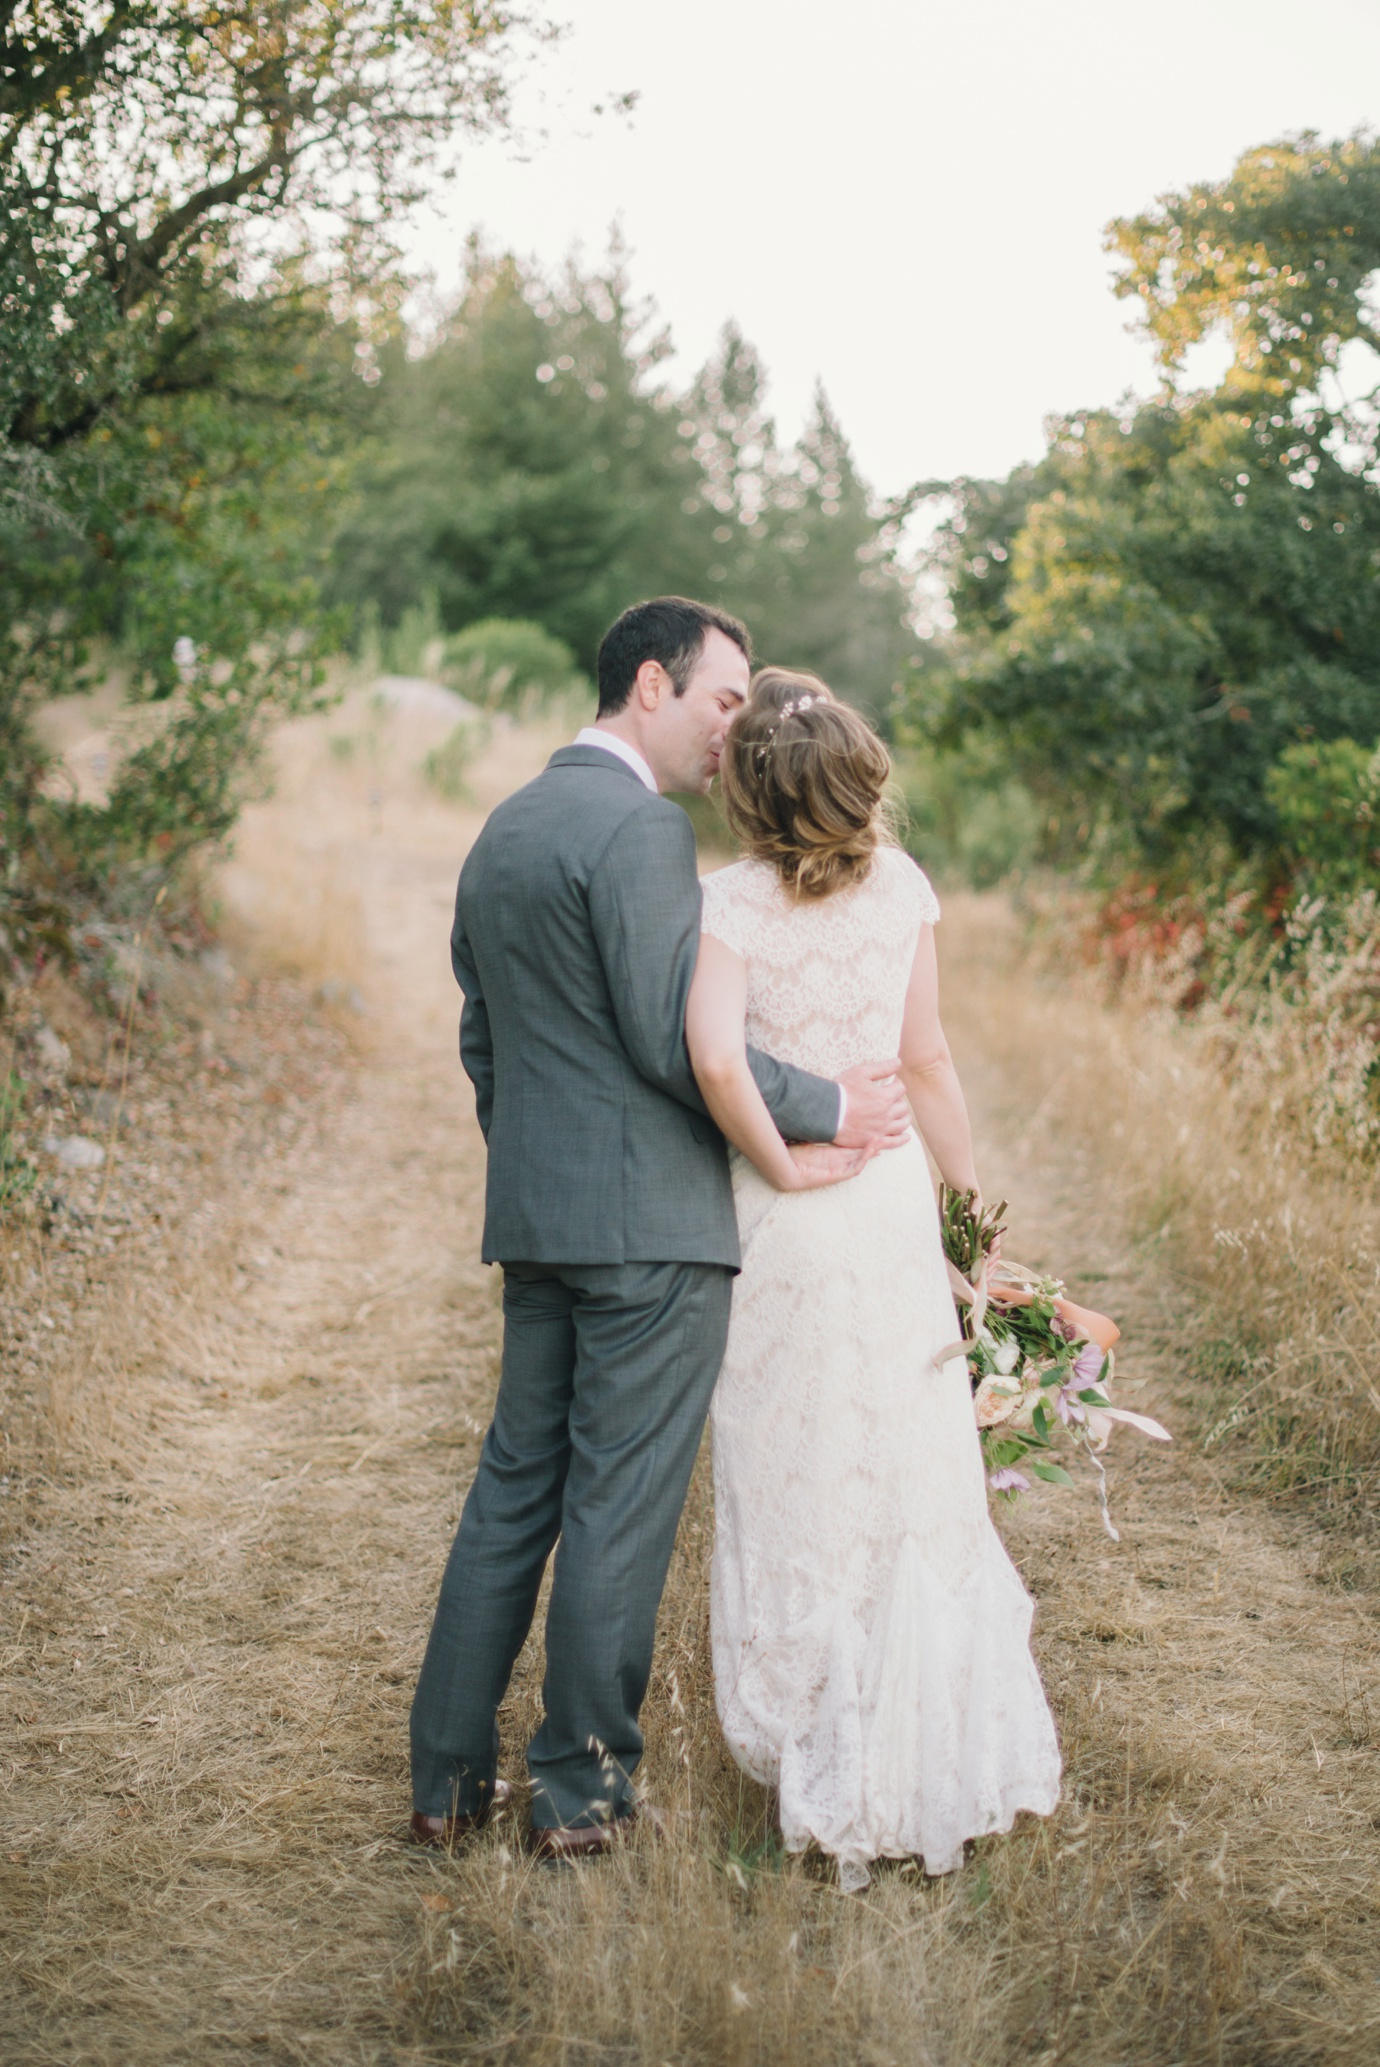 delbarr-moradi-photography-fine-art-wedding-photography-napa-valley-wedding_33